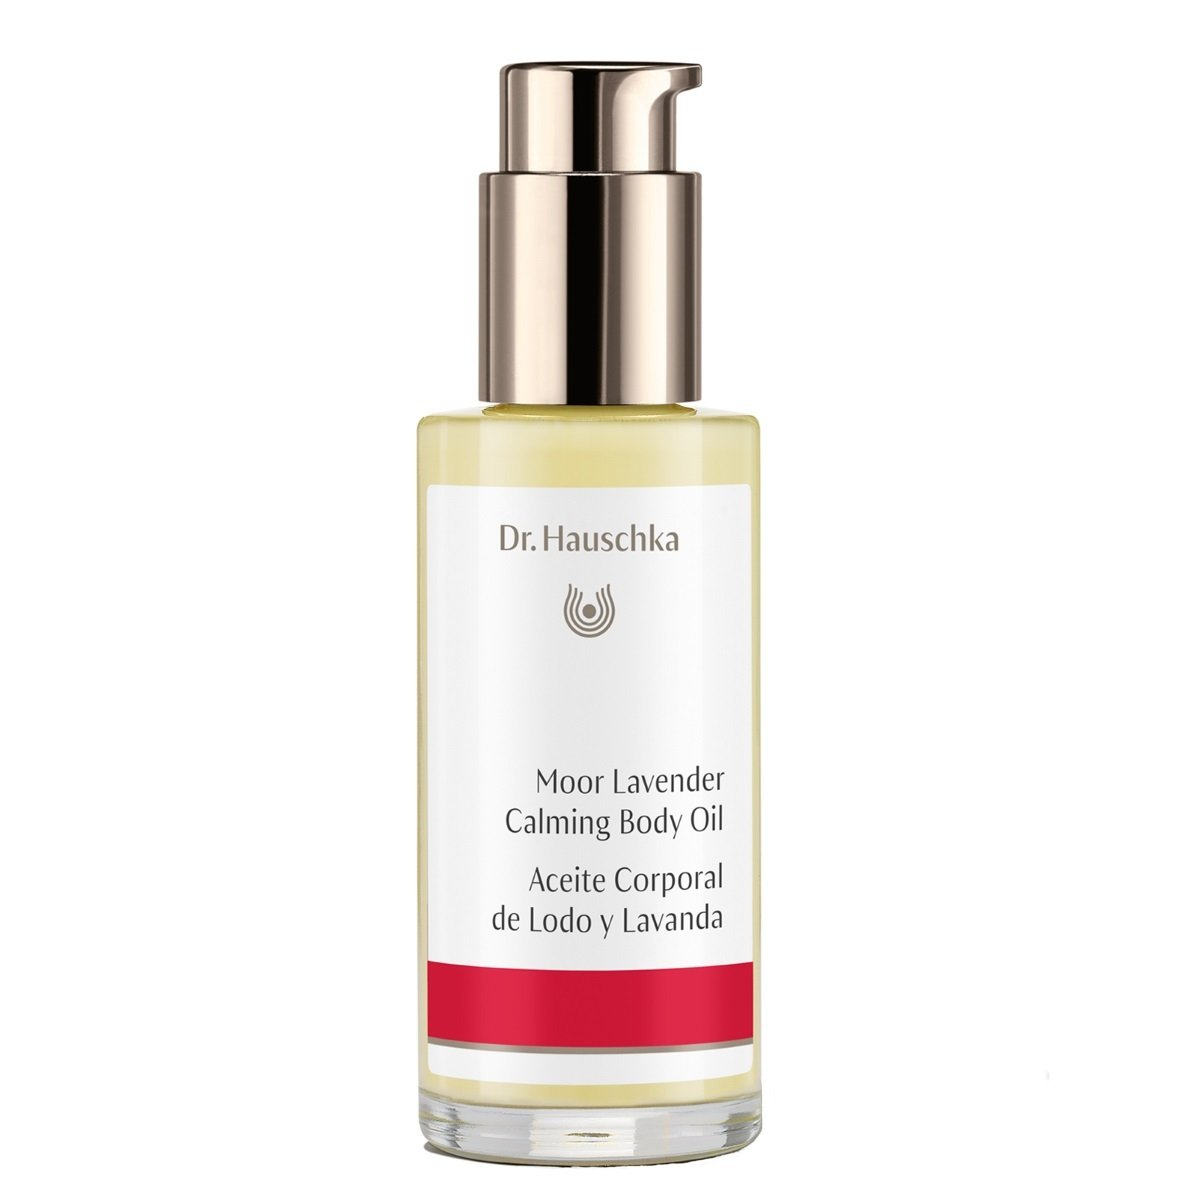 dr hauschka rose oil reviews